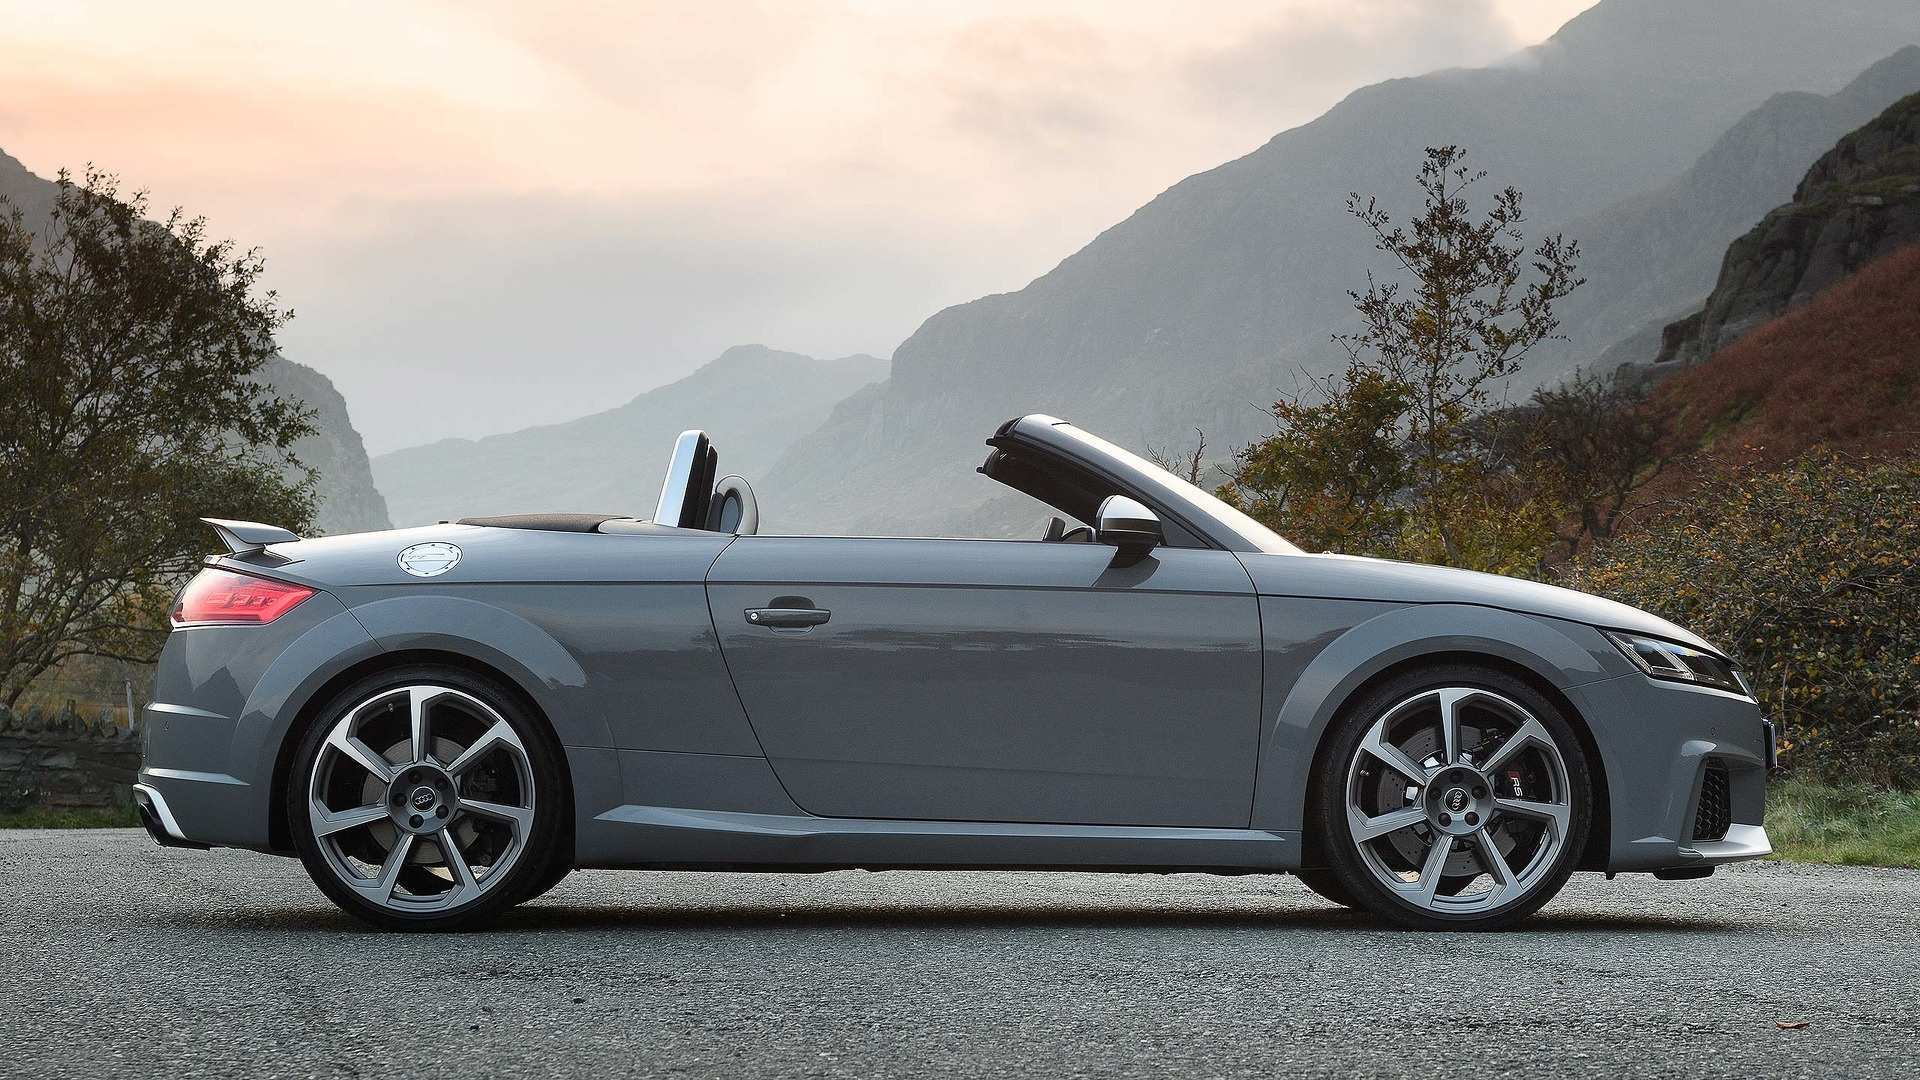 34 Concept of Audi Tt Roadster 2020 Specs and Review with Audi Tt Roadster 2020